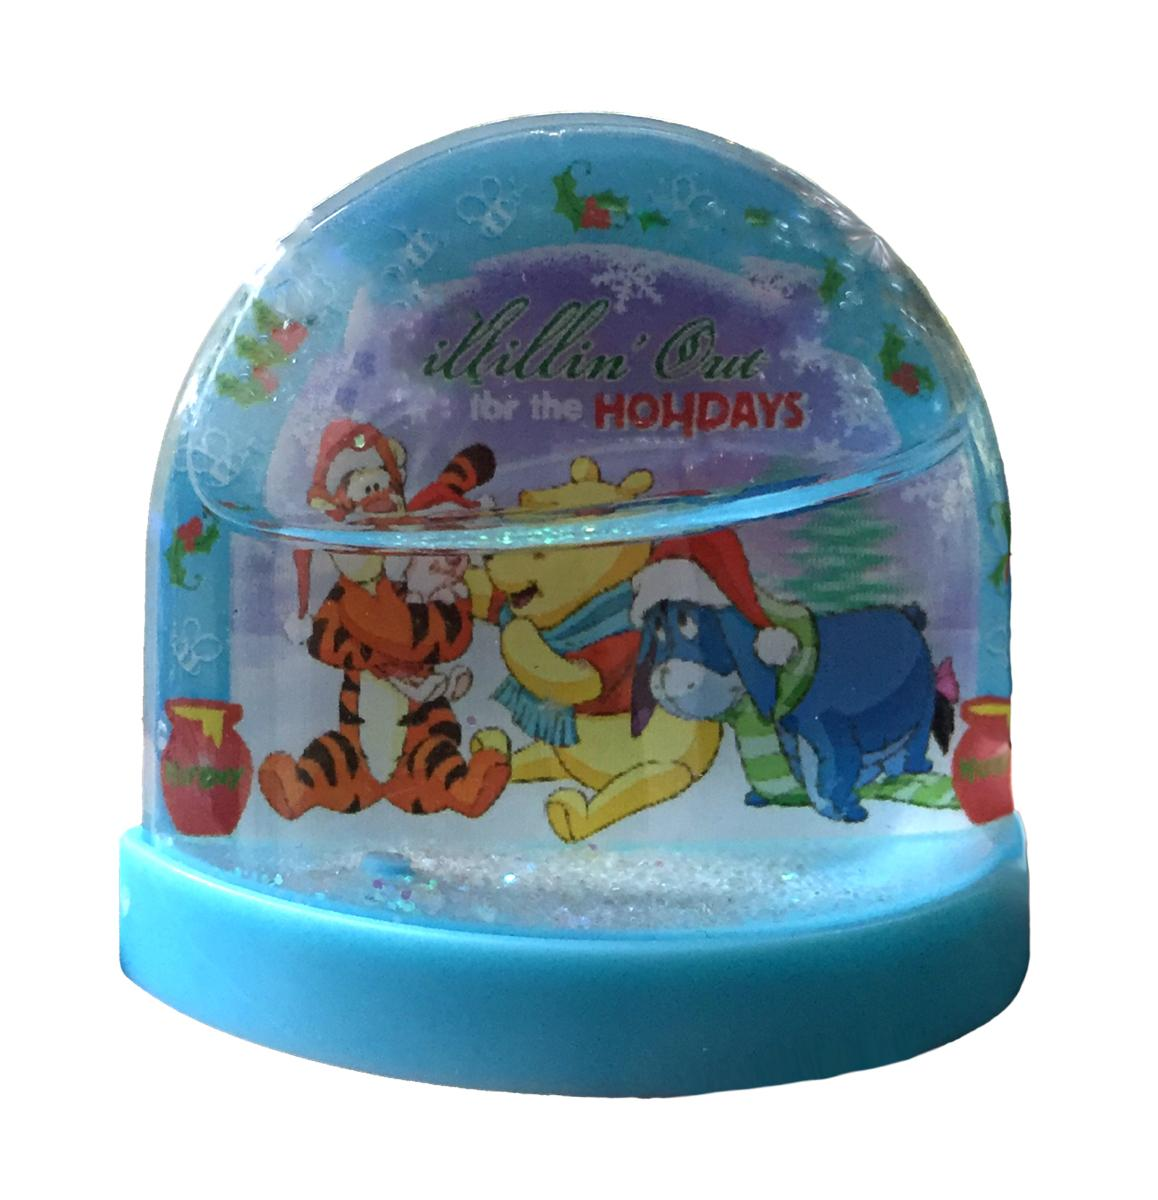 Pooh Lenticular Plastic Holiday Snowglobe